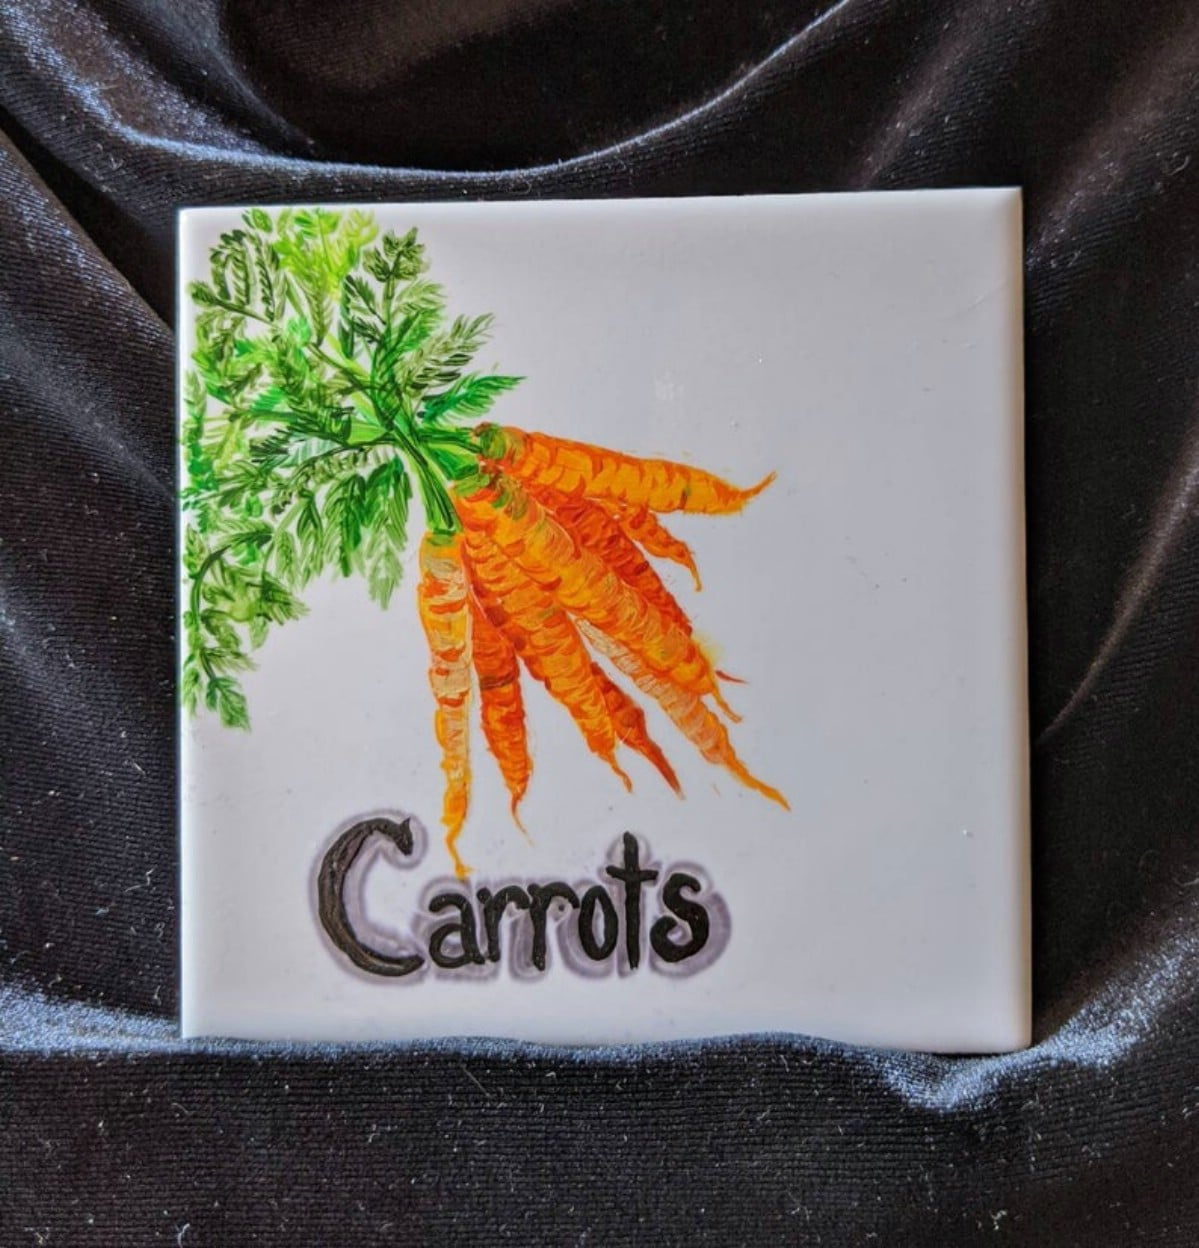 White tile with carrots painted and word carrots painted on top